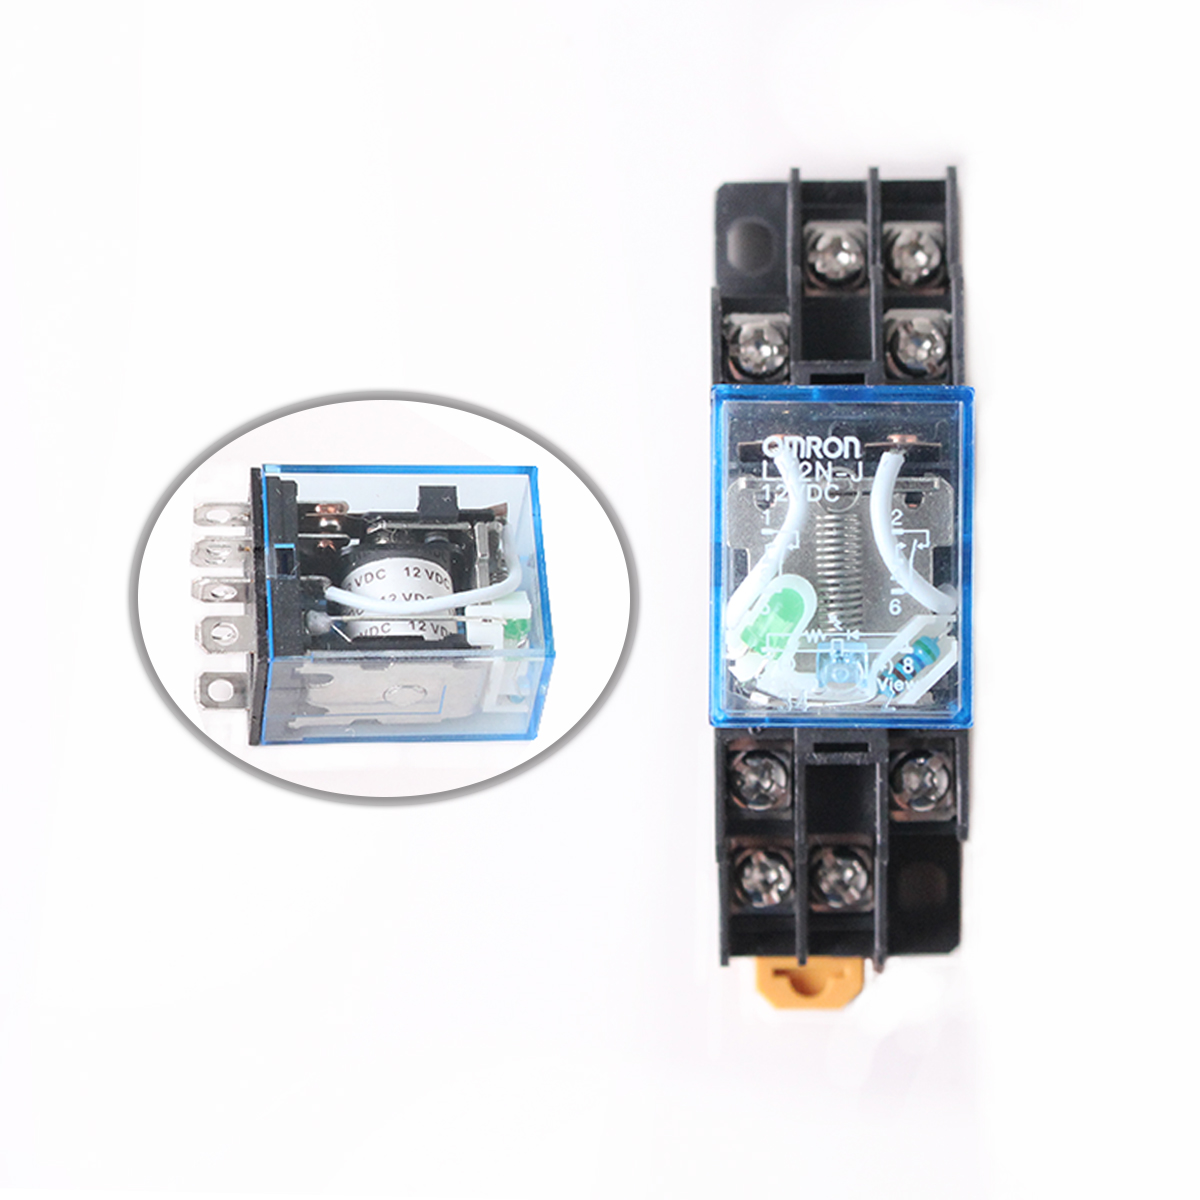 Electromagnetic Coil Power Relay LY2NJ DPDT 8Pin DC12V 24V AC220V HH62P JQX-13F Miniature Relay With Base